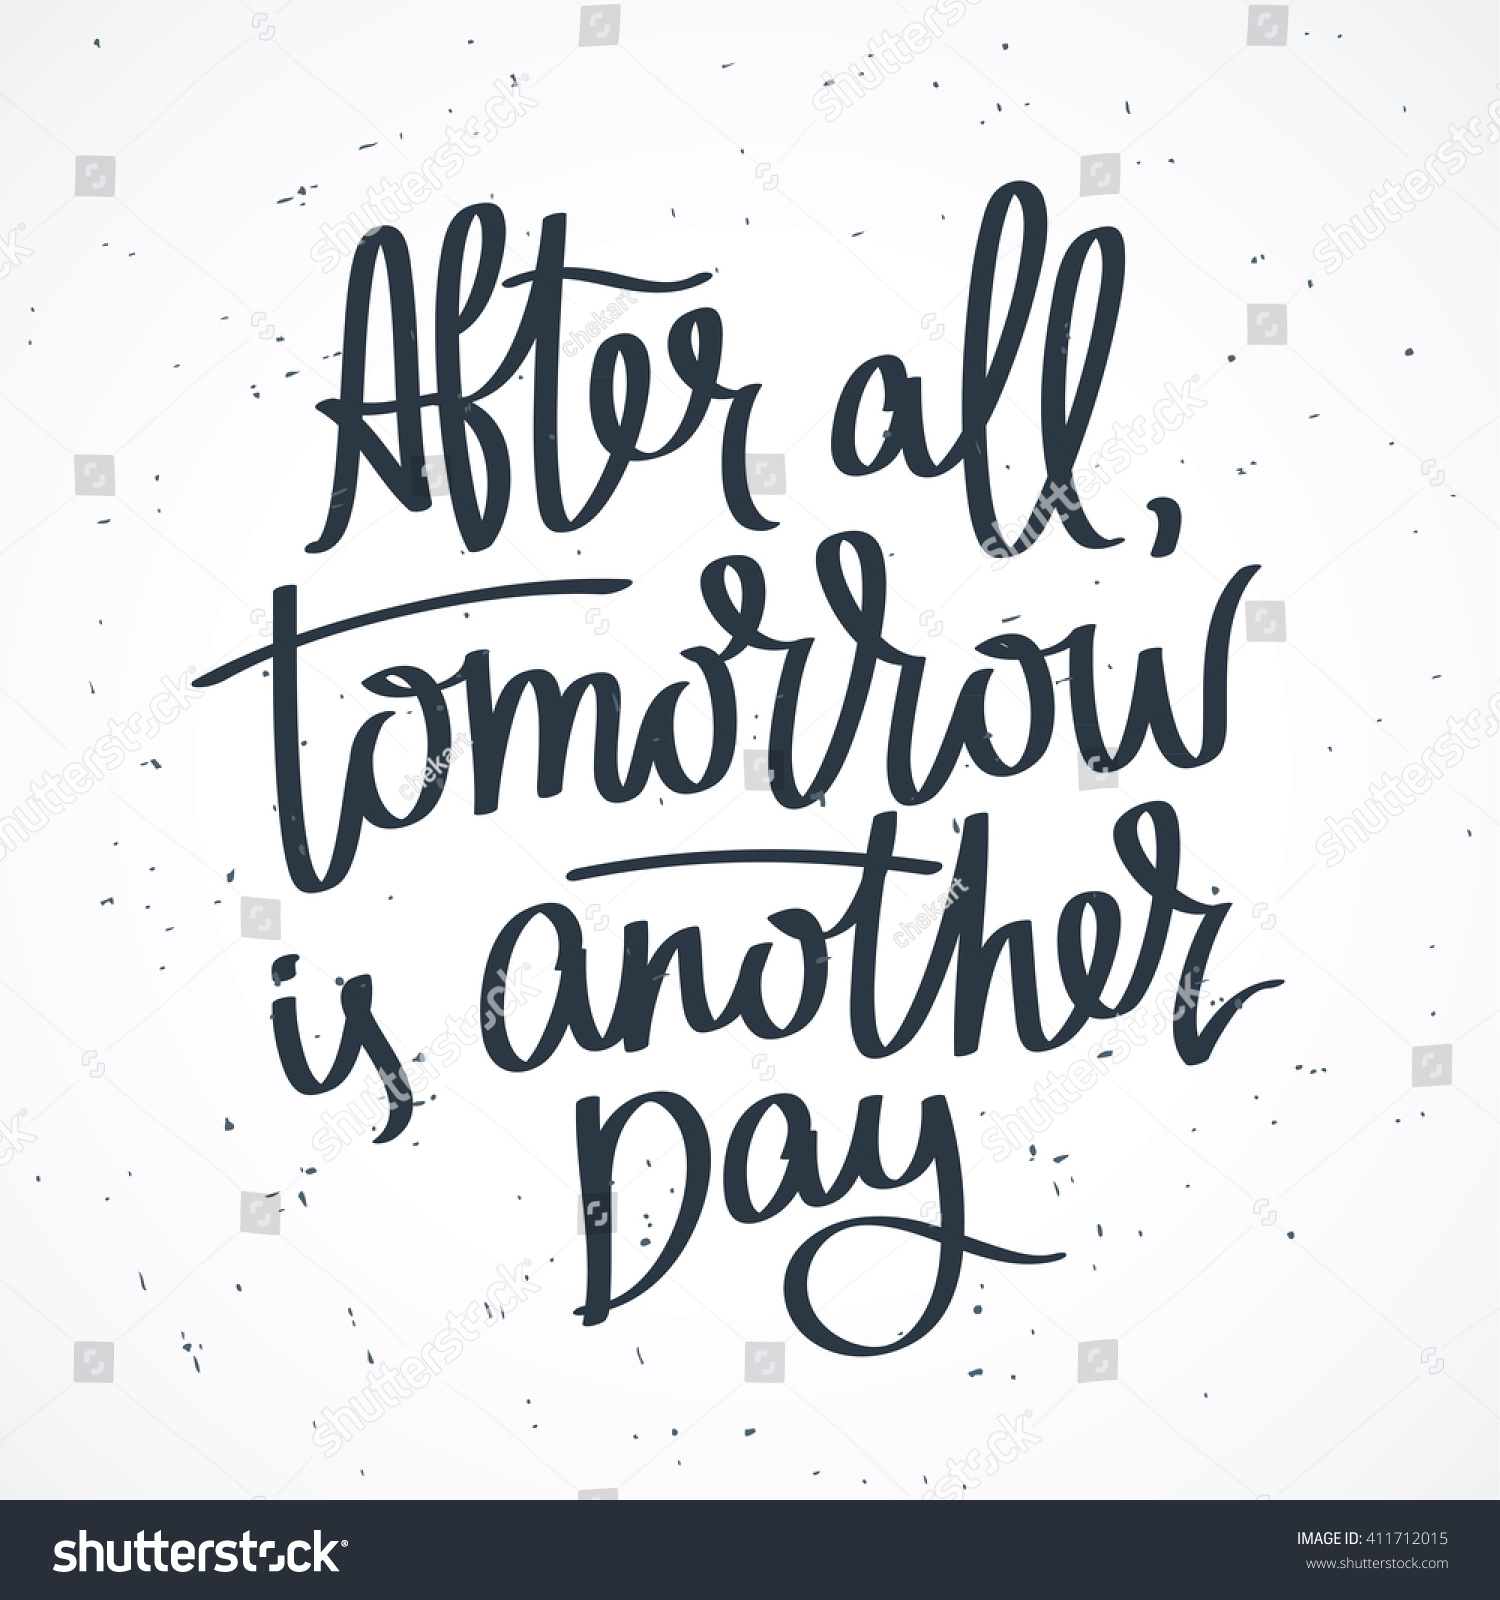 Proverb After All Tomorrow Another Day Stock Vector Royalty Free